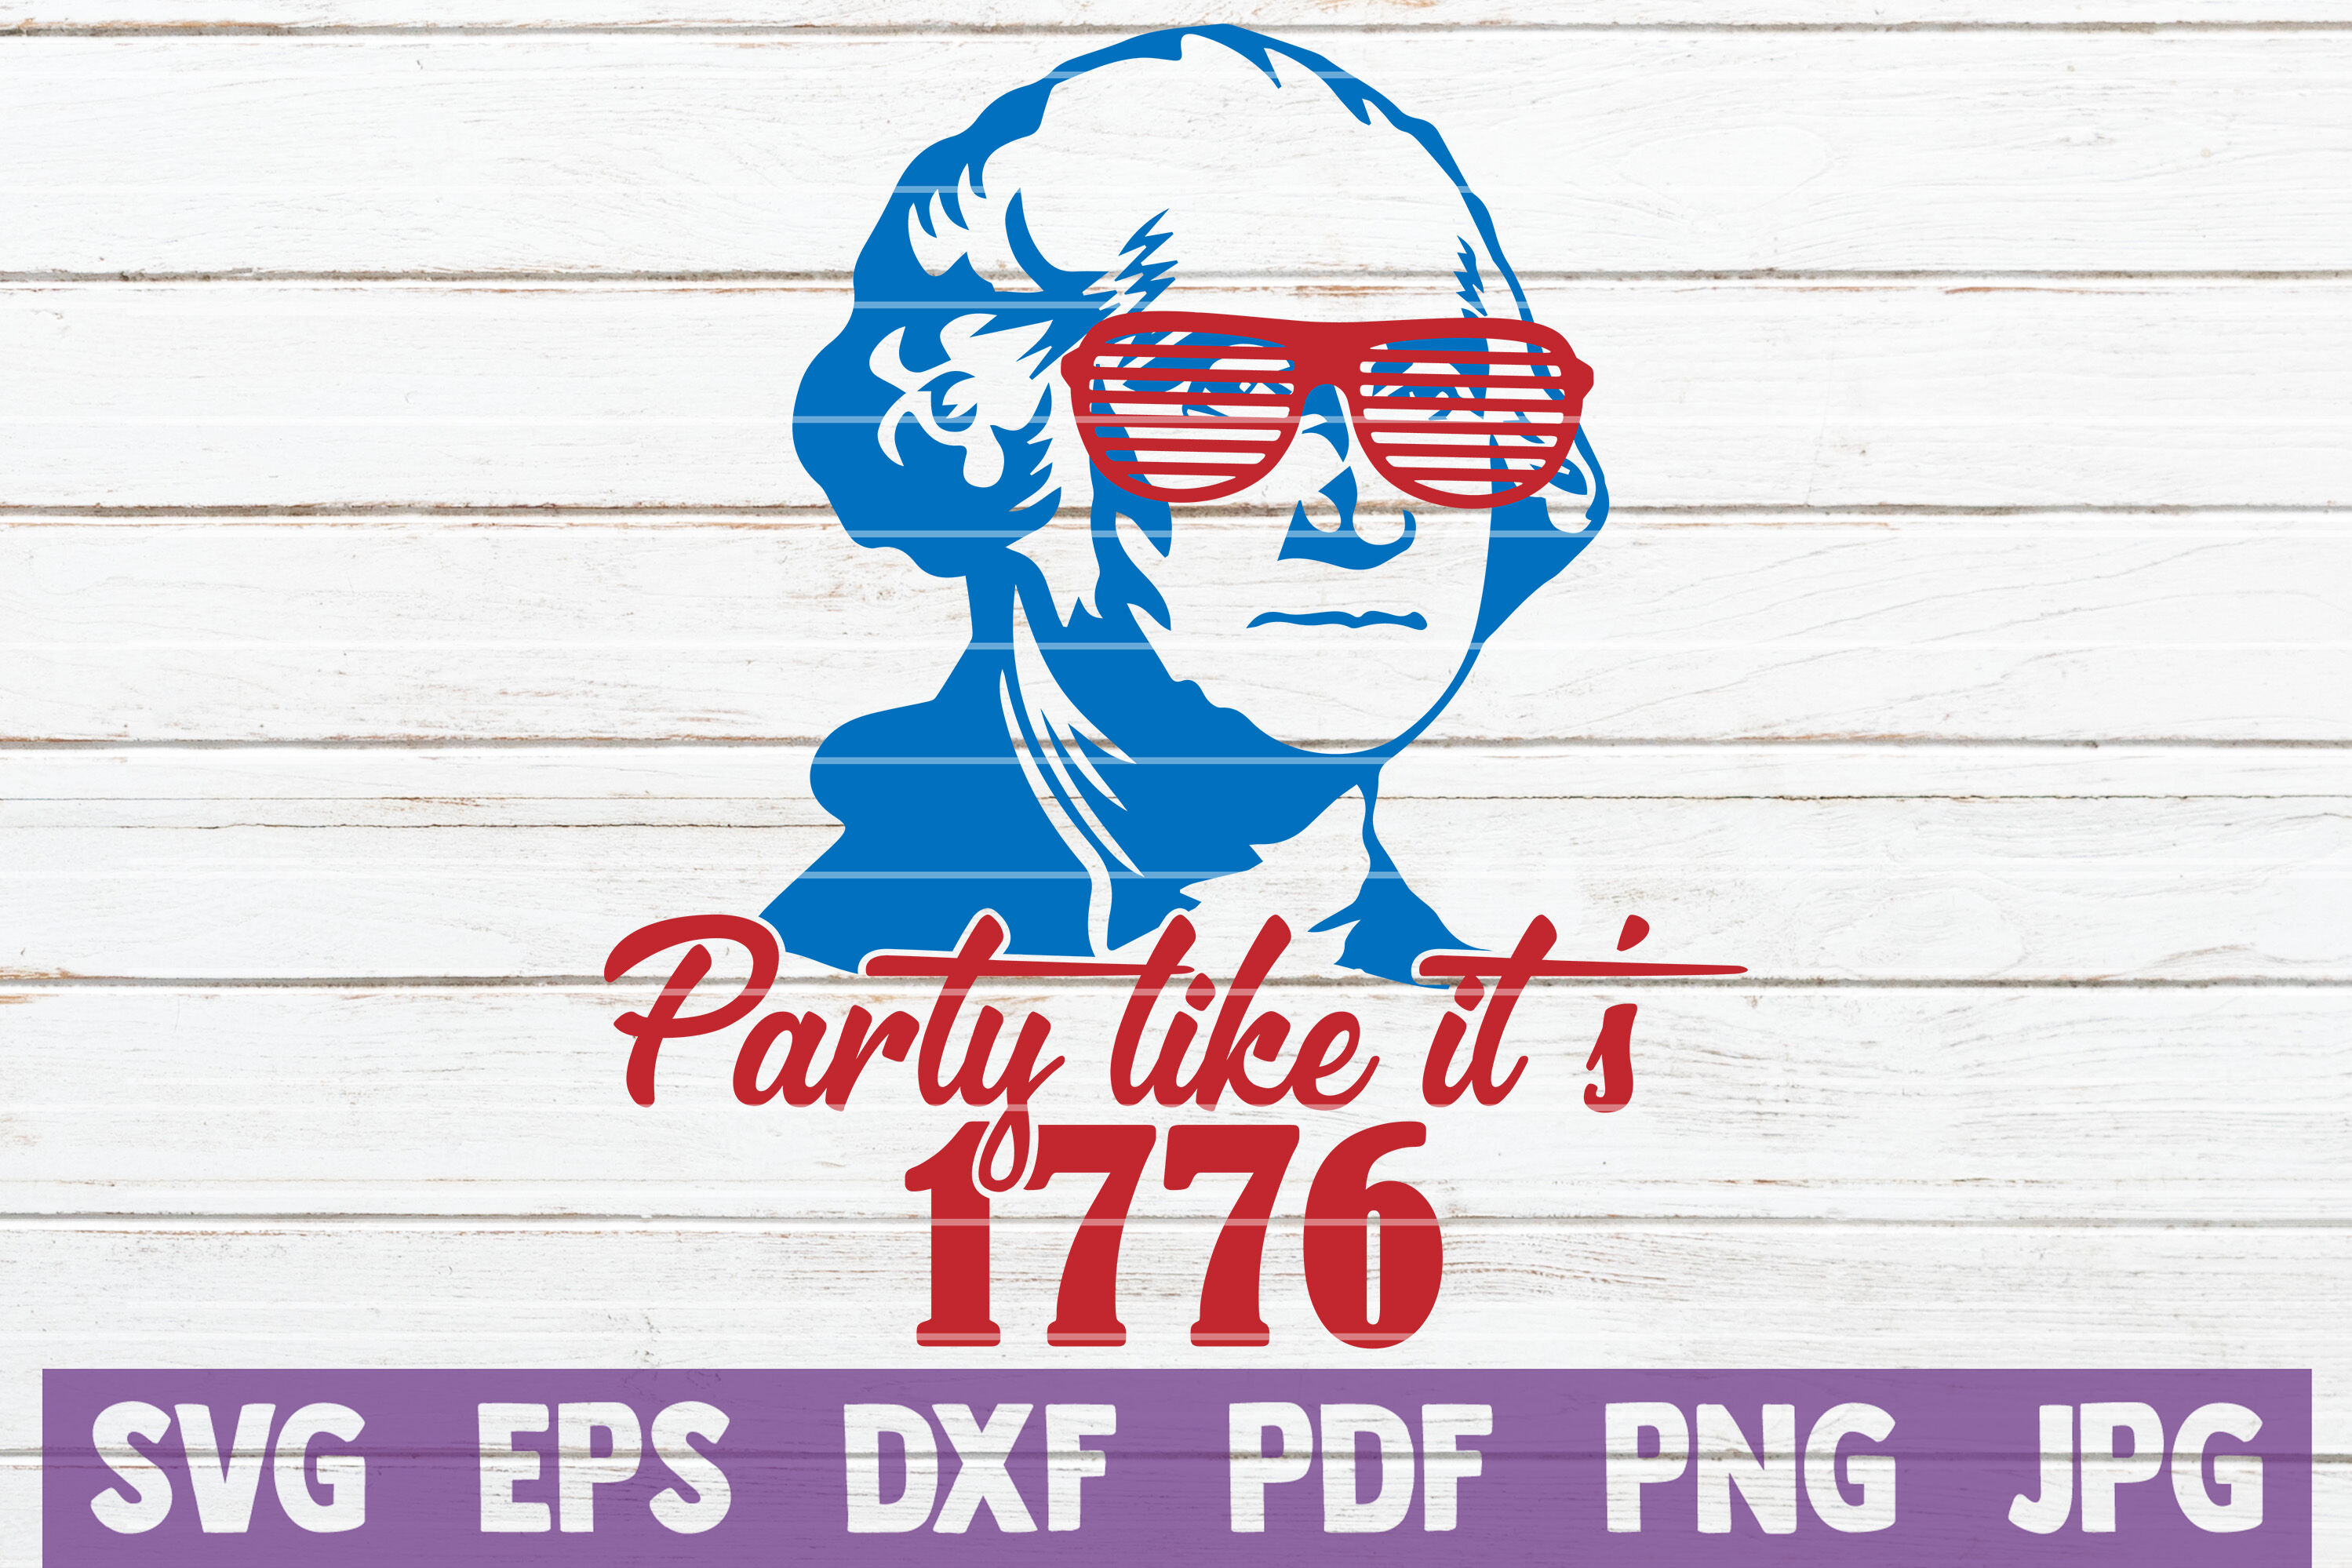 Download Party Like It's 1776 Svg Image